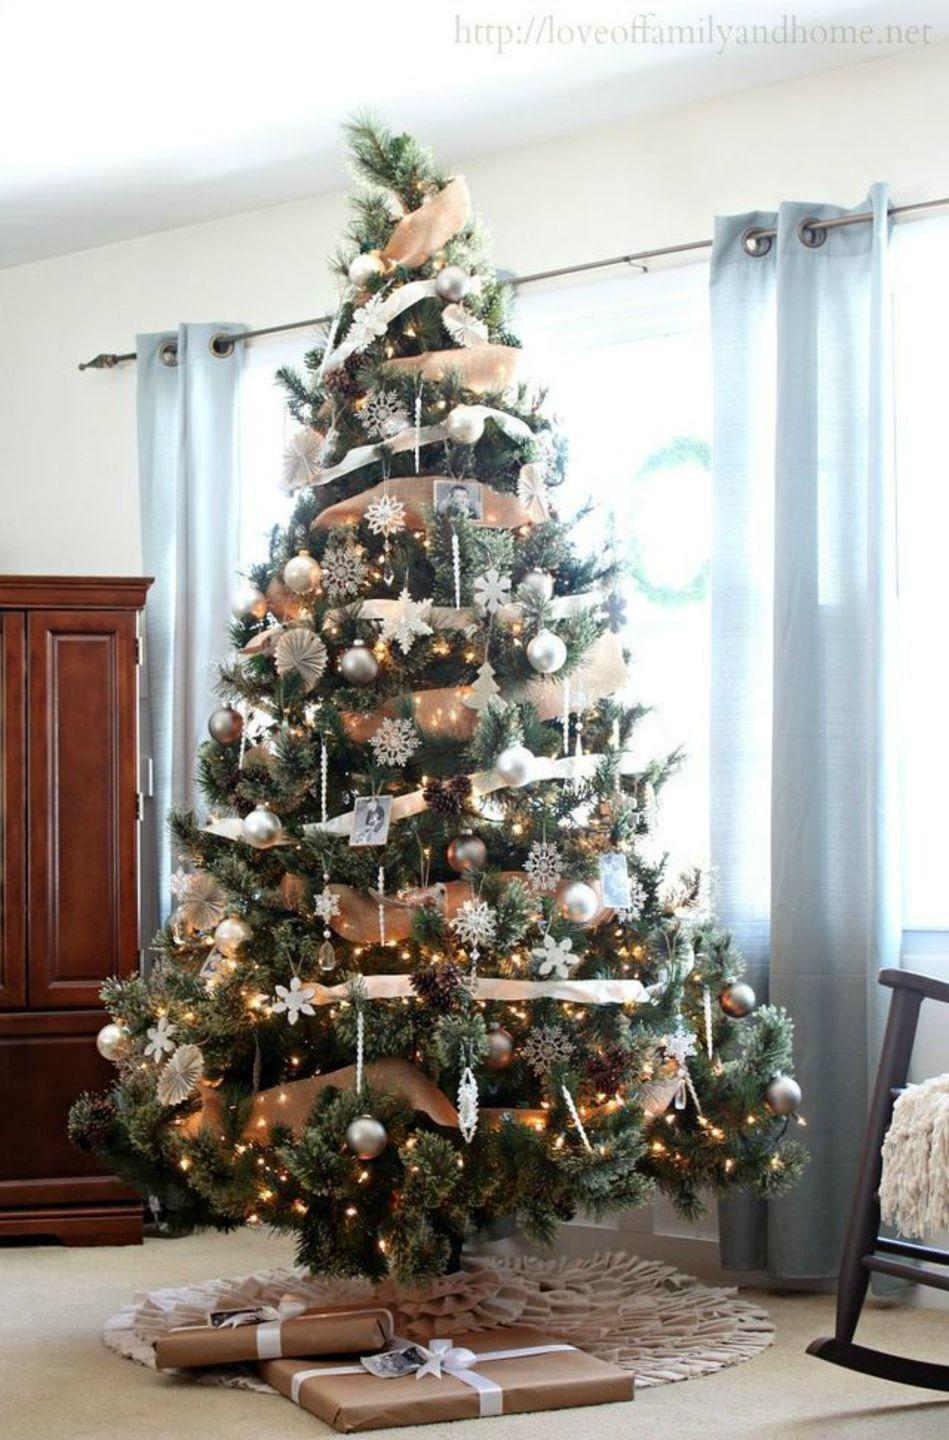 """<p>Wrap a rustic burlap garland around your tree then add sparkling ornaments and delicate snowflakes for a glamorous look.</p><p><em><strong>Get the tutorial at </strong><strong><a href=""""https://loveoffamilyandhome.net/2013/12/neutral-rustic-glam-christmas-tree.html"""" rel=""""nofollow noopener"""" target=""""_blank"""" data-ylk=""""slk:Love of Family and Home."""" class=""""link rapid-noclick-resp"""">Love of Family and Home.</a></strong></em></p><p><a class=""""link rapid-noclick-resp"""" href=""""https://www.amazon.com/dp/B07MHL54GT/?tag=syn-yahoo-20&ascsubtag=%5Bartid%7C10070.g.2025%5Bsrc%7Cyahoo-us"""" rel=""""nofollow noopener"""" target=""""_blank"""" data-ylk=""""slk:BUY BURLAP"""">BUY BURLAP</a></p>"""